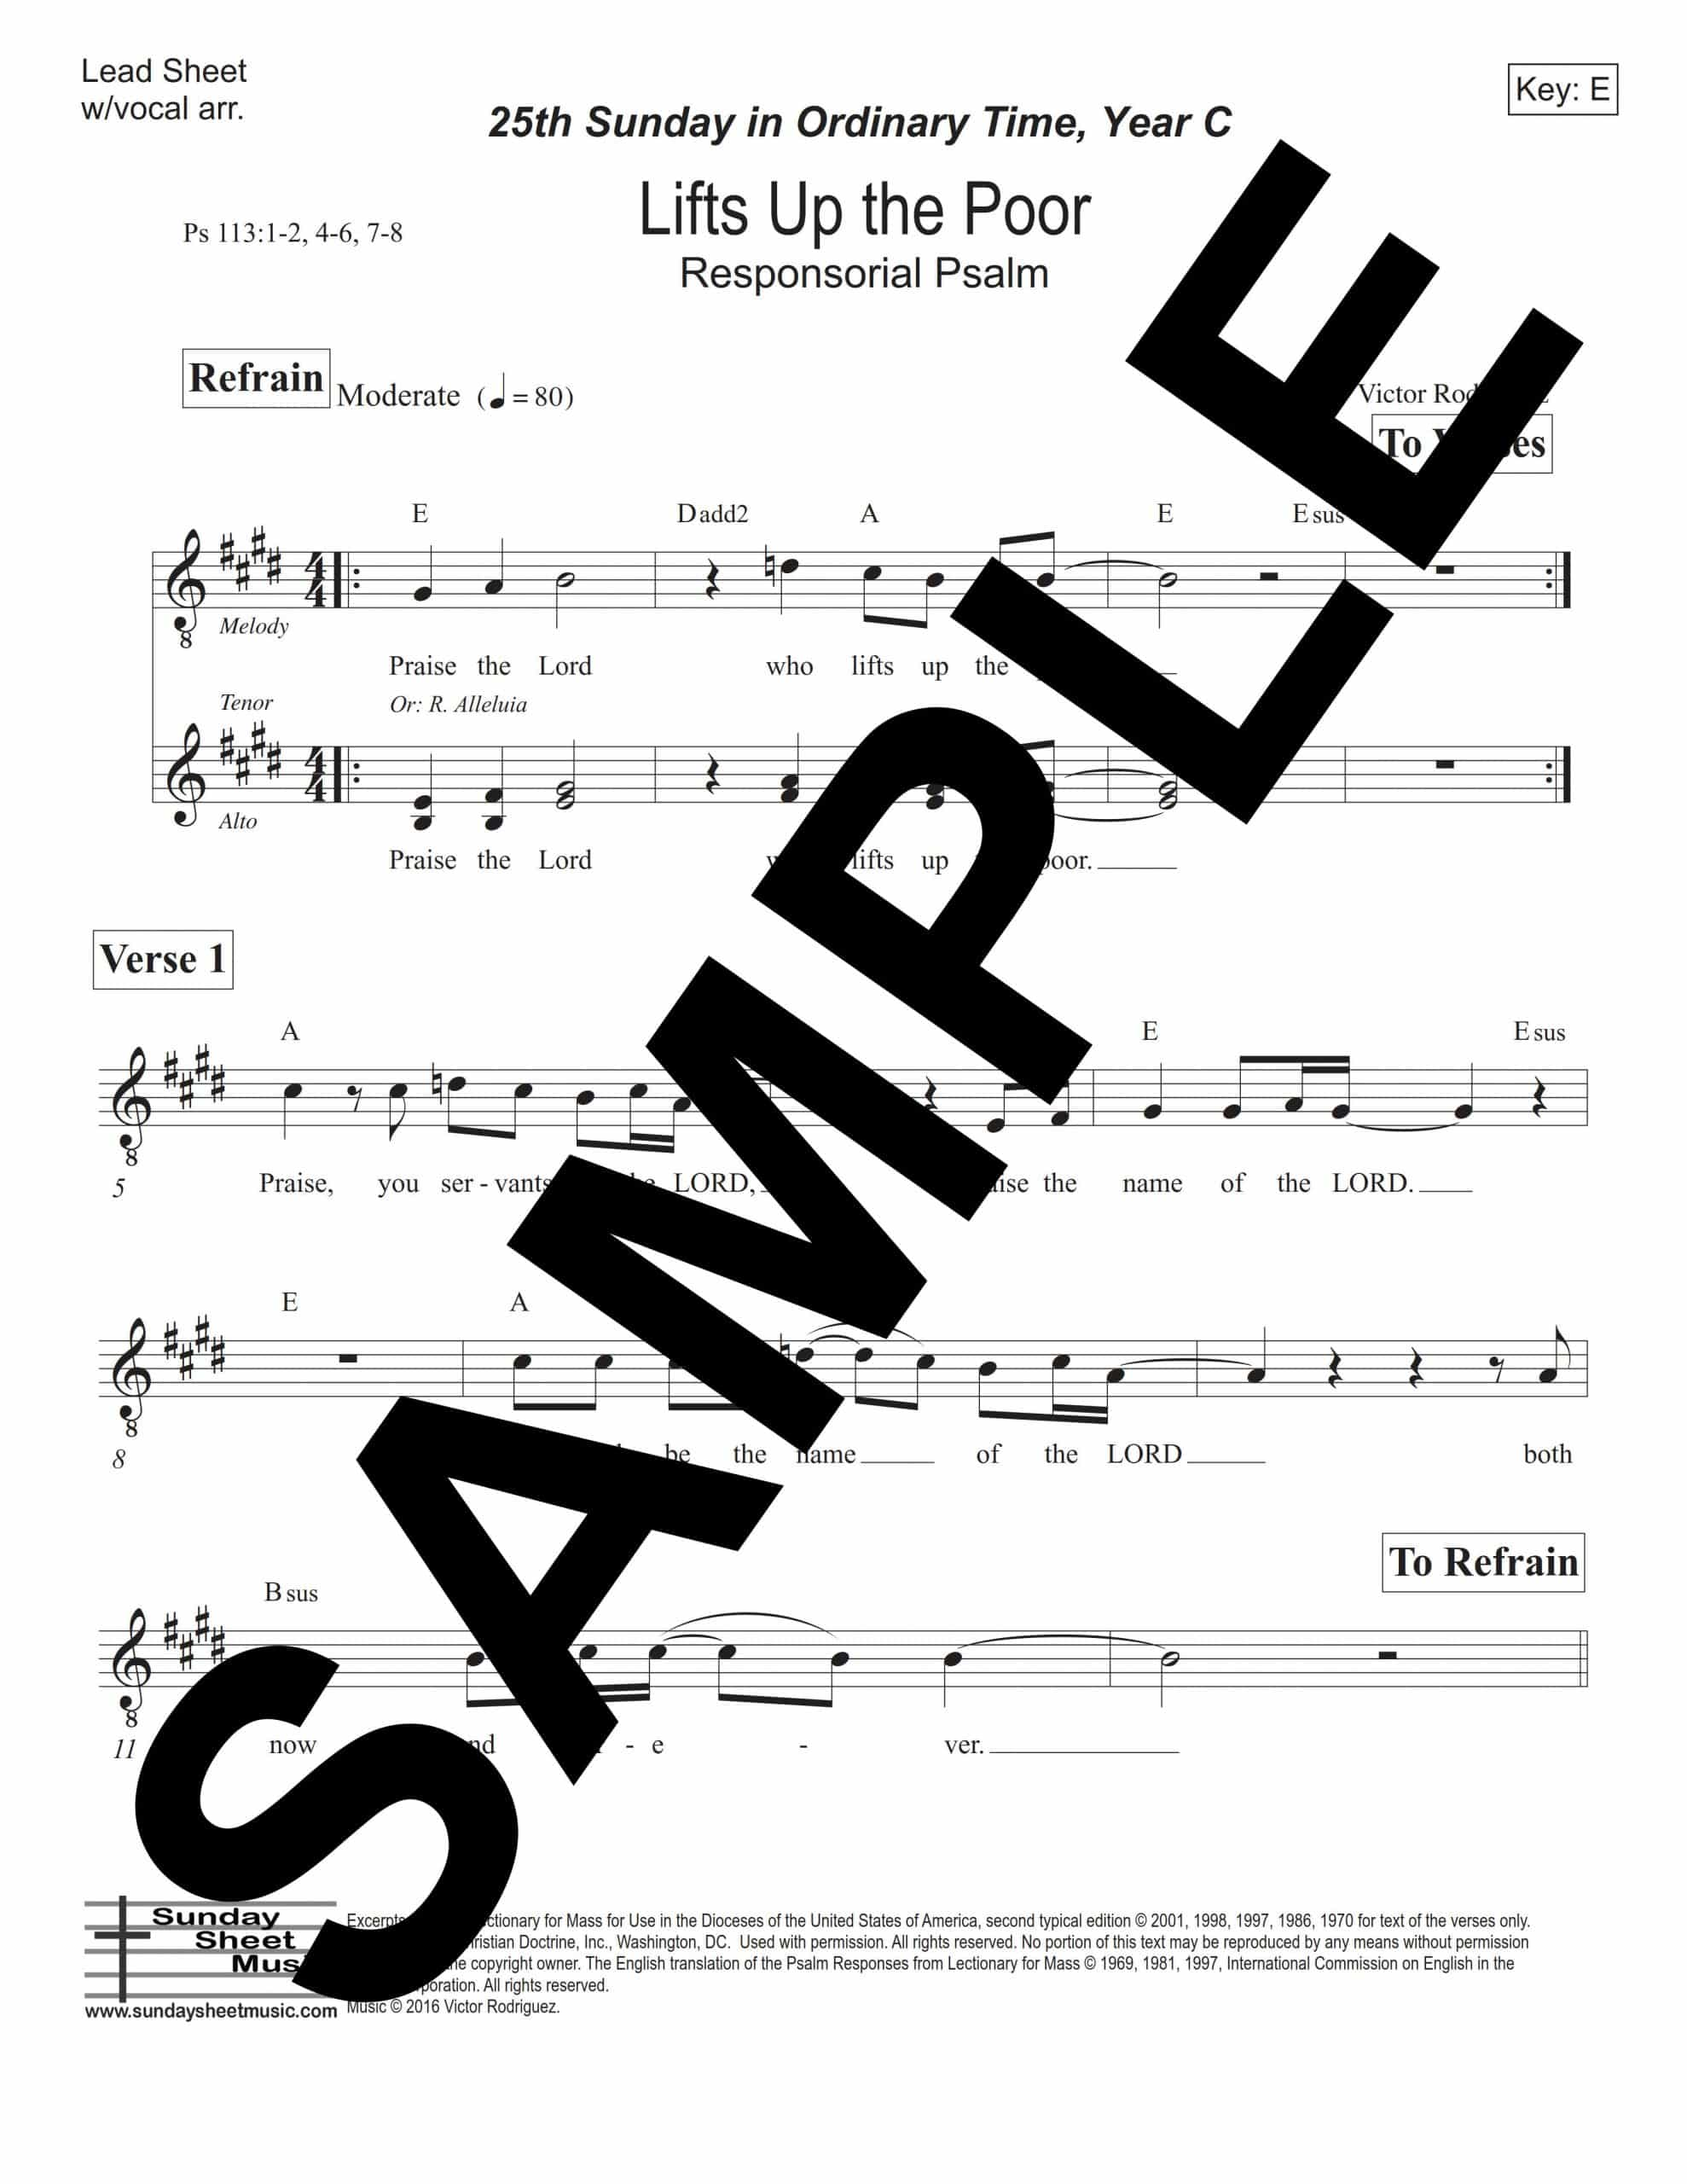 Psalm 113 Lifts Up the Poor Rodriguez Sample Lead Sheet w vocal arr scaled